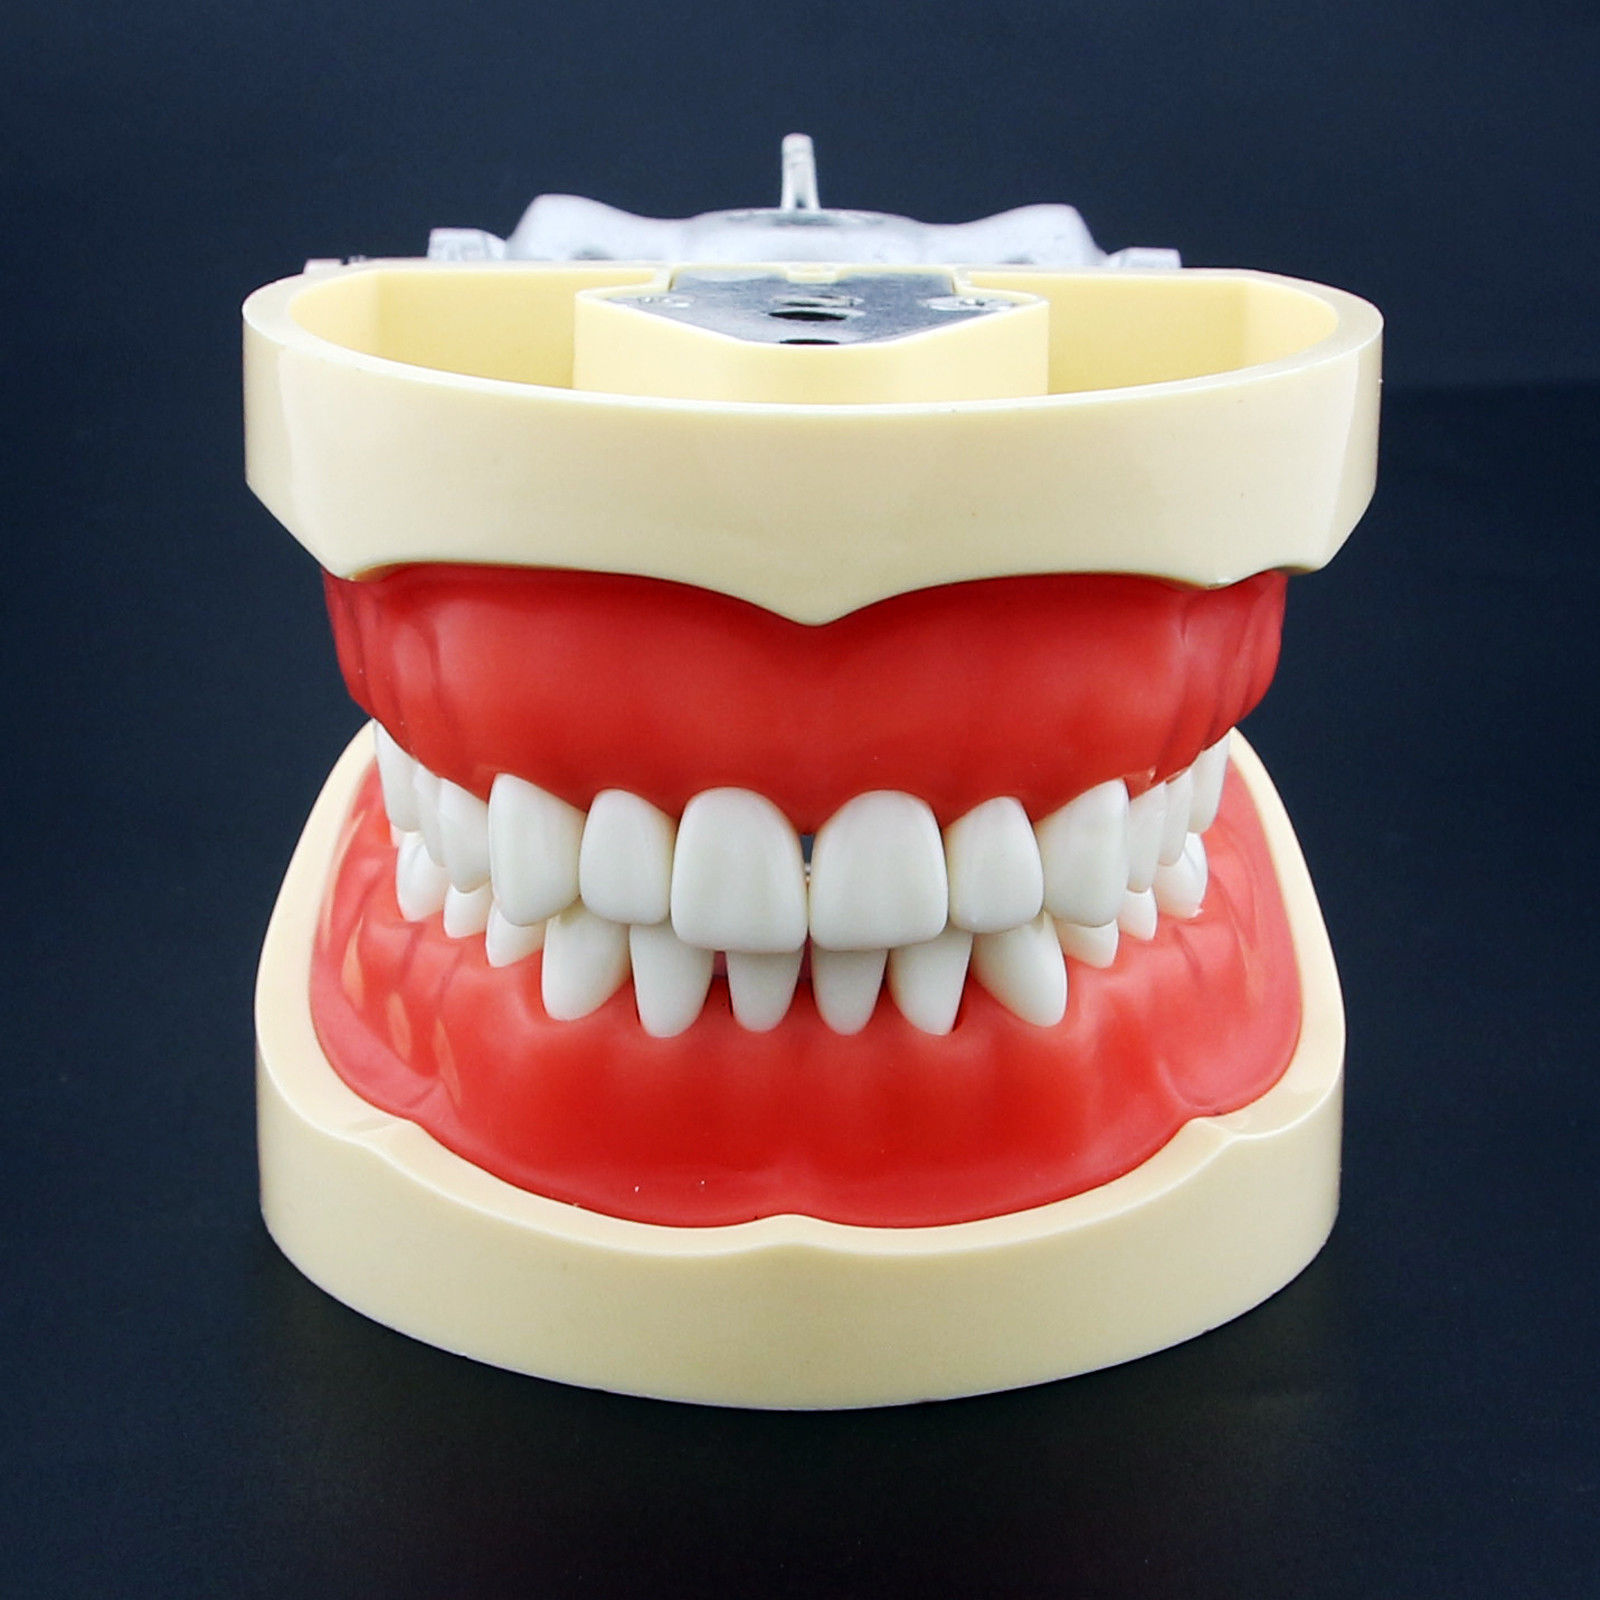 kilgore Nissin Type Dental Typodont Model 200 with Removable Teethkilgore Nissin Type Dental Typodont Model 200 with Removable Teeth